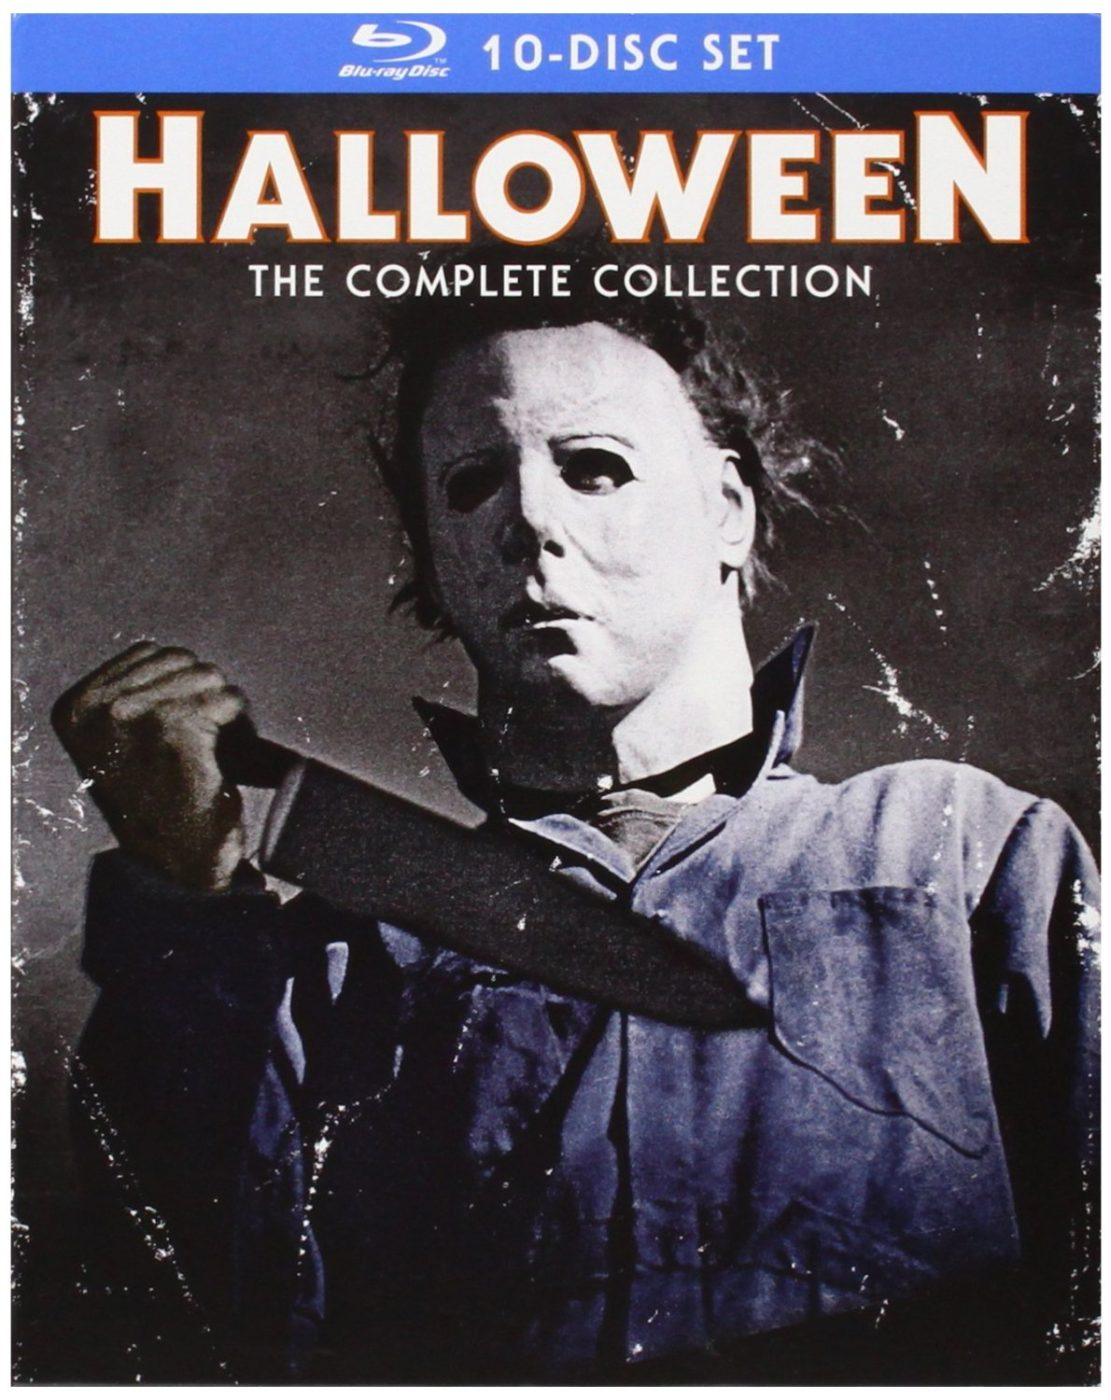 The Halloween: The Complete Collection box set includes all ten feature films is available on blu ray right here.